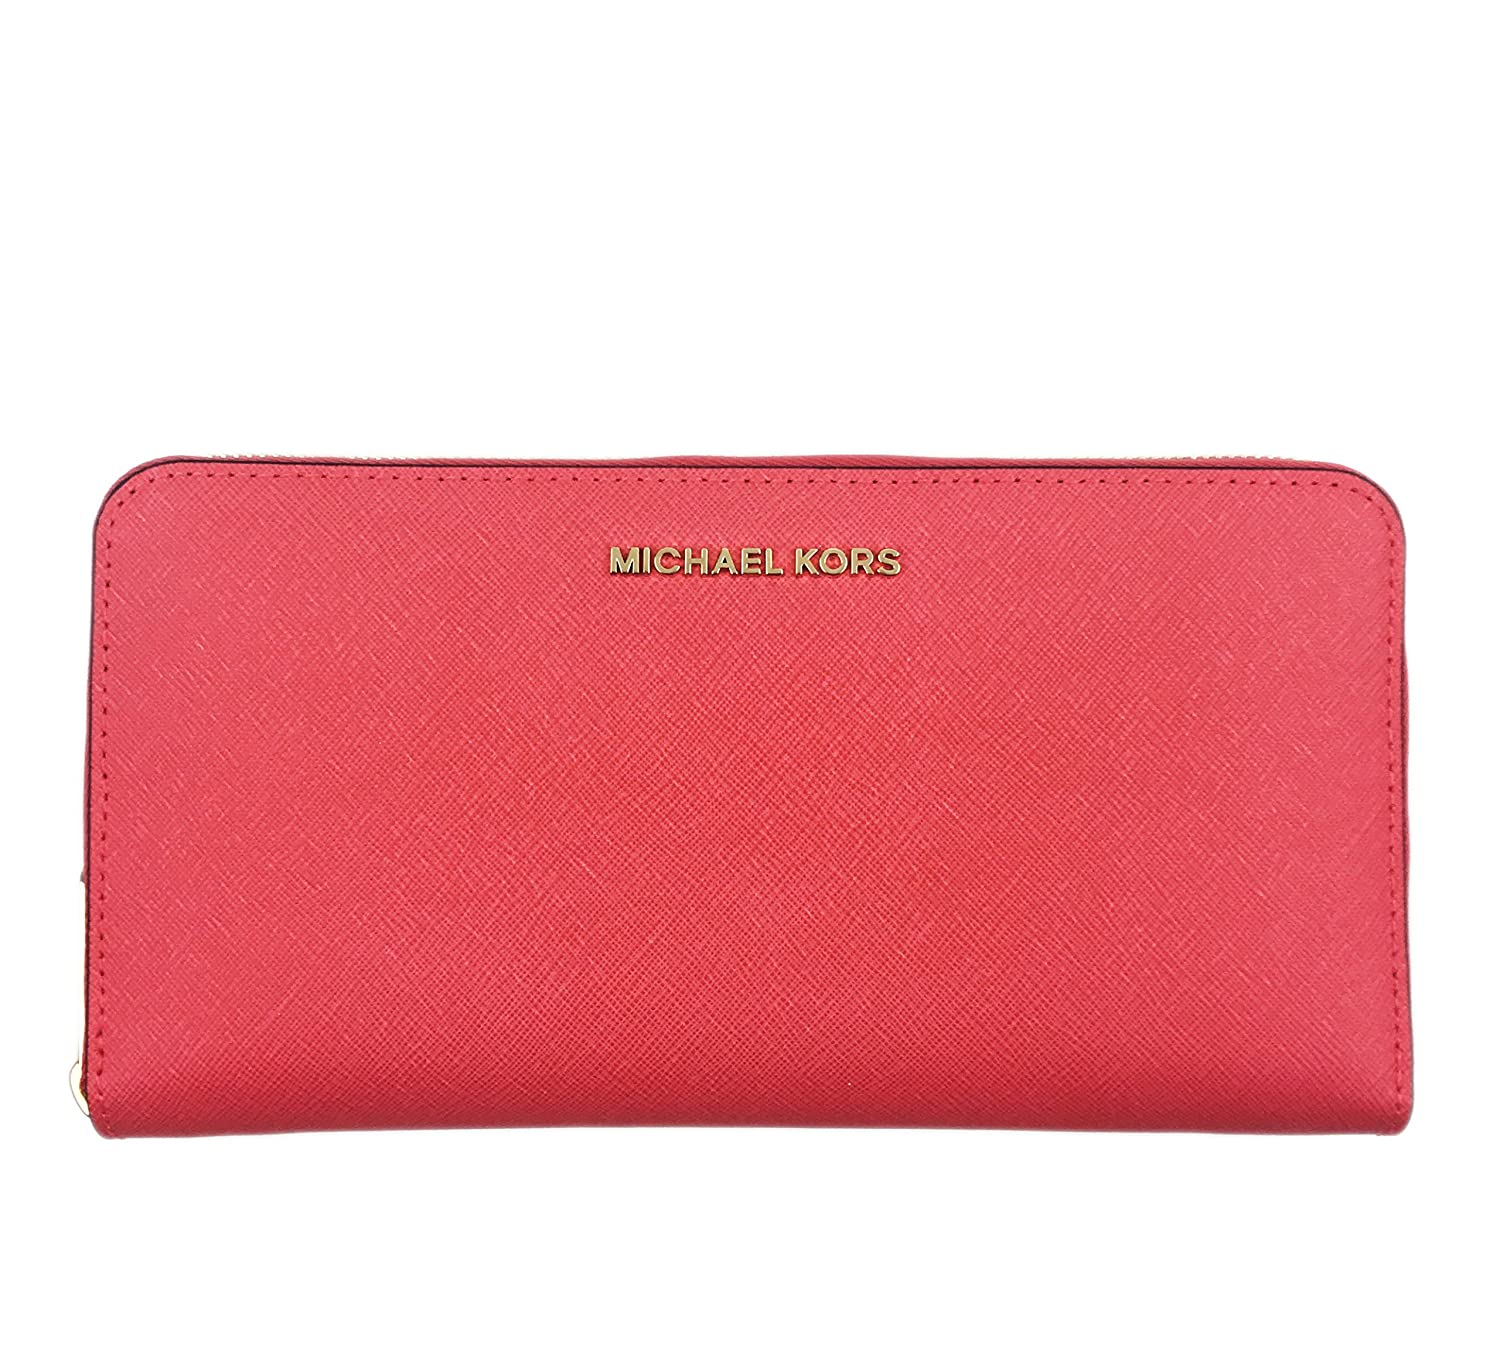 8fe45d4c71eb MICHAEL MICHAEL KORS Jet Set Travel Saffiano Leather Continental Wallet  -Extra Large (Coral Reef): Amazon.ca: Clothing & Accessories